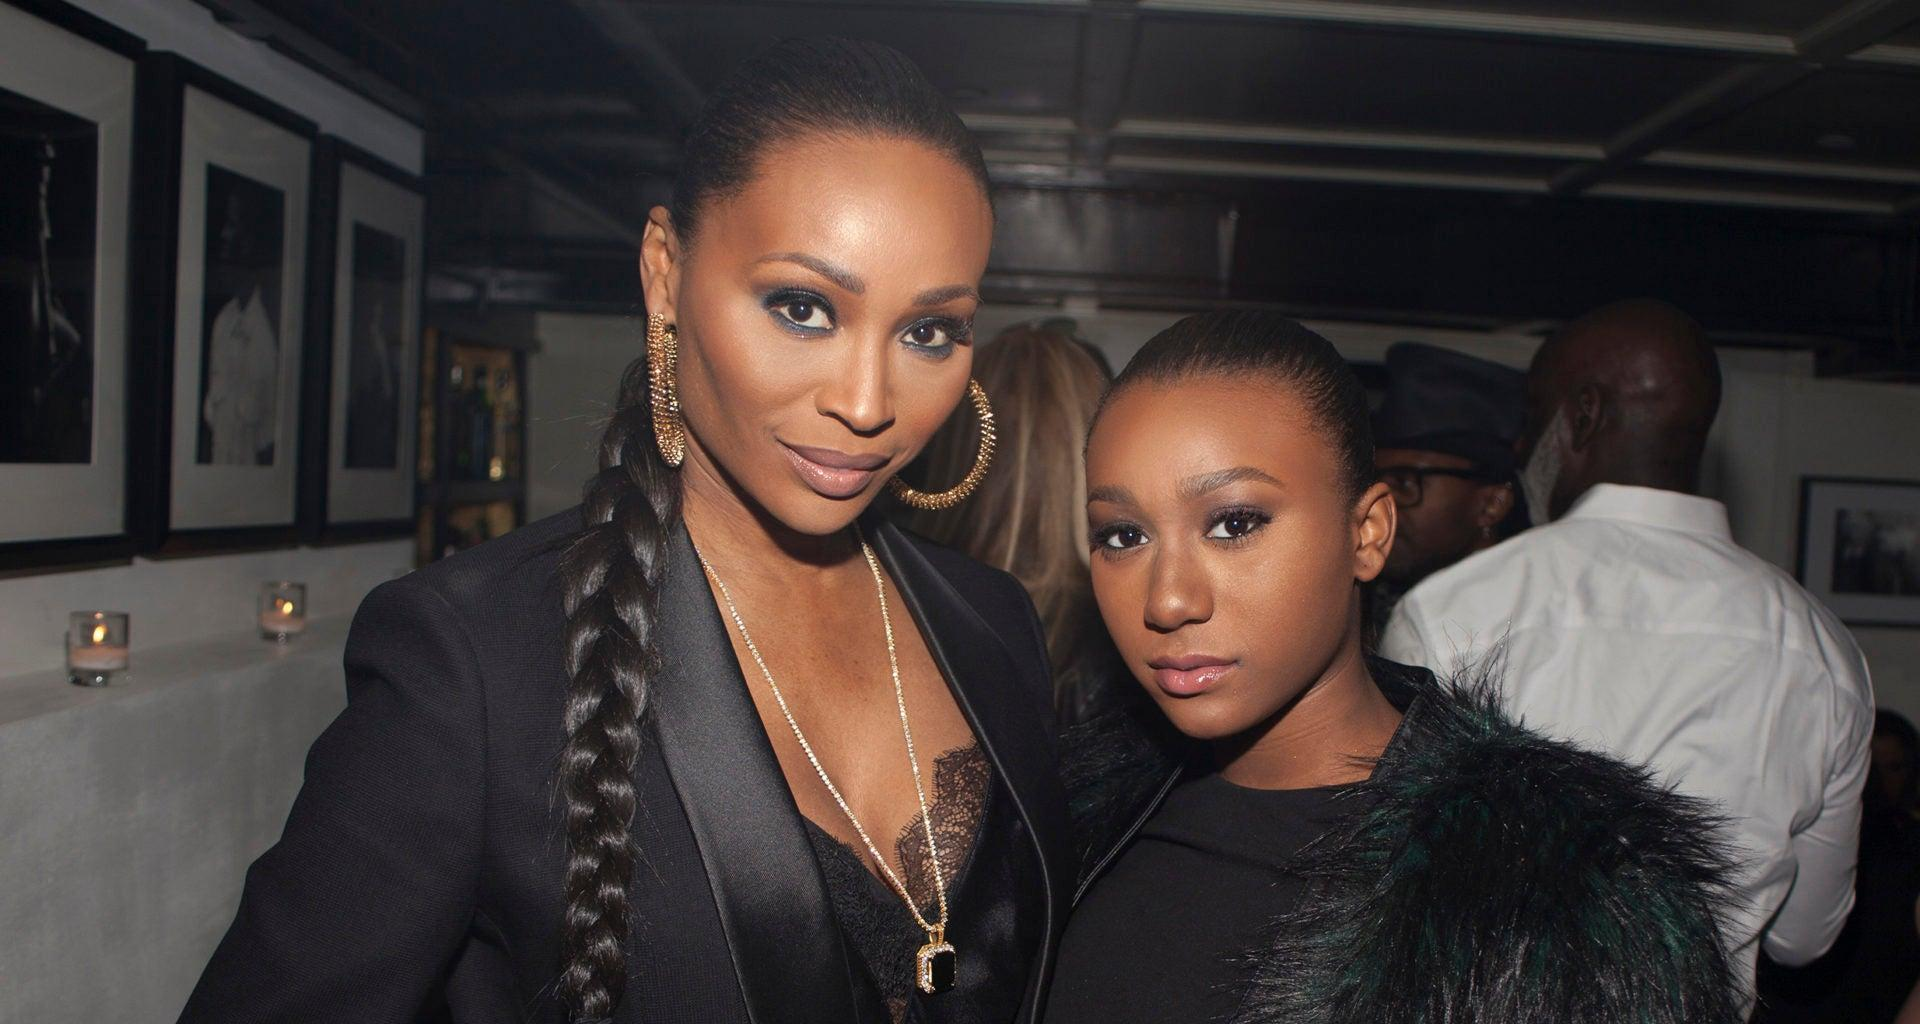 Cynthia Bailey Films Another Video With Her Daughter, Noelle Robinson